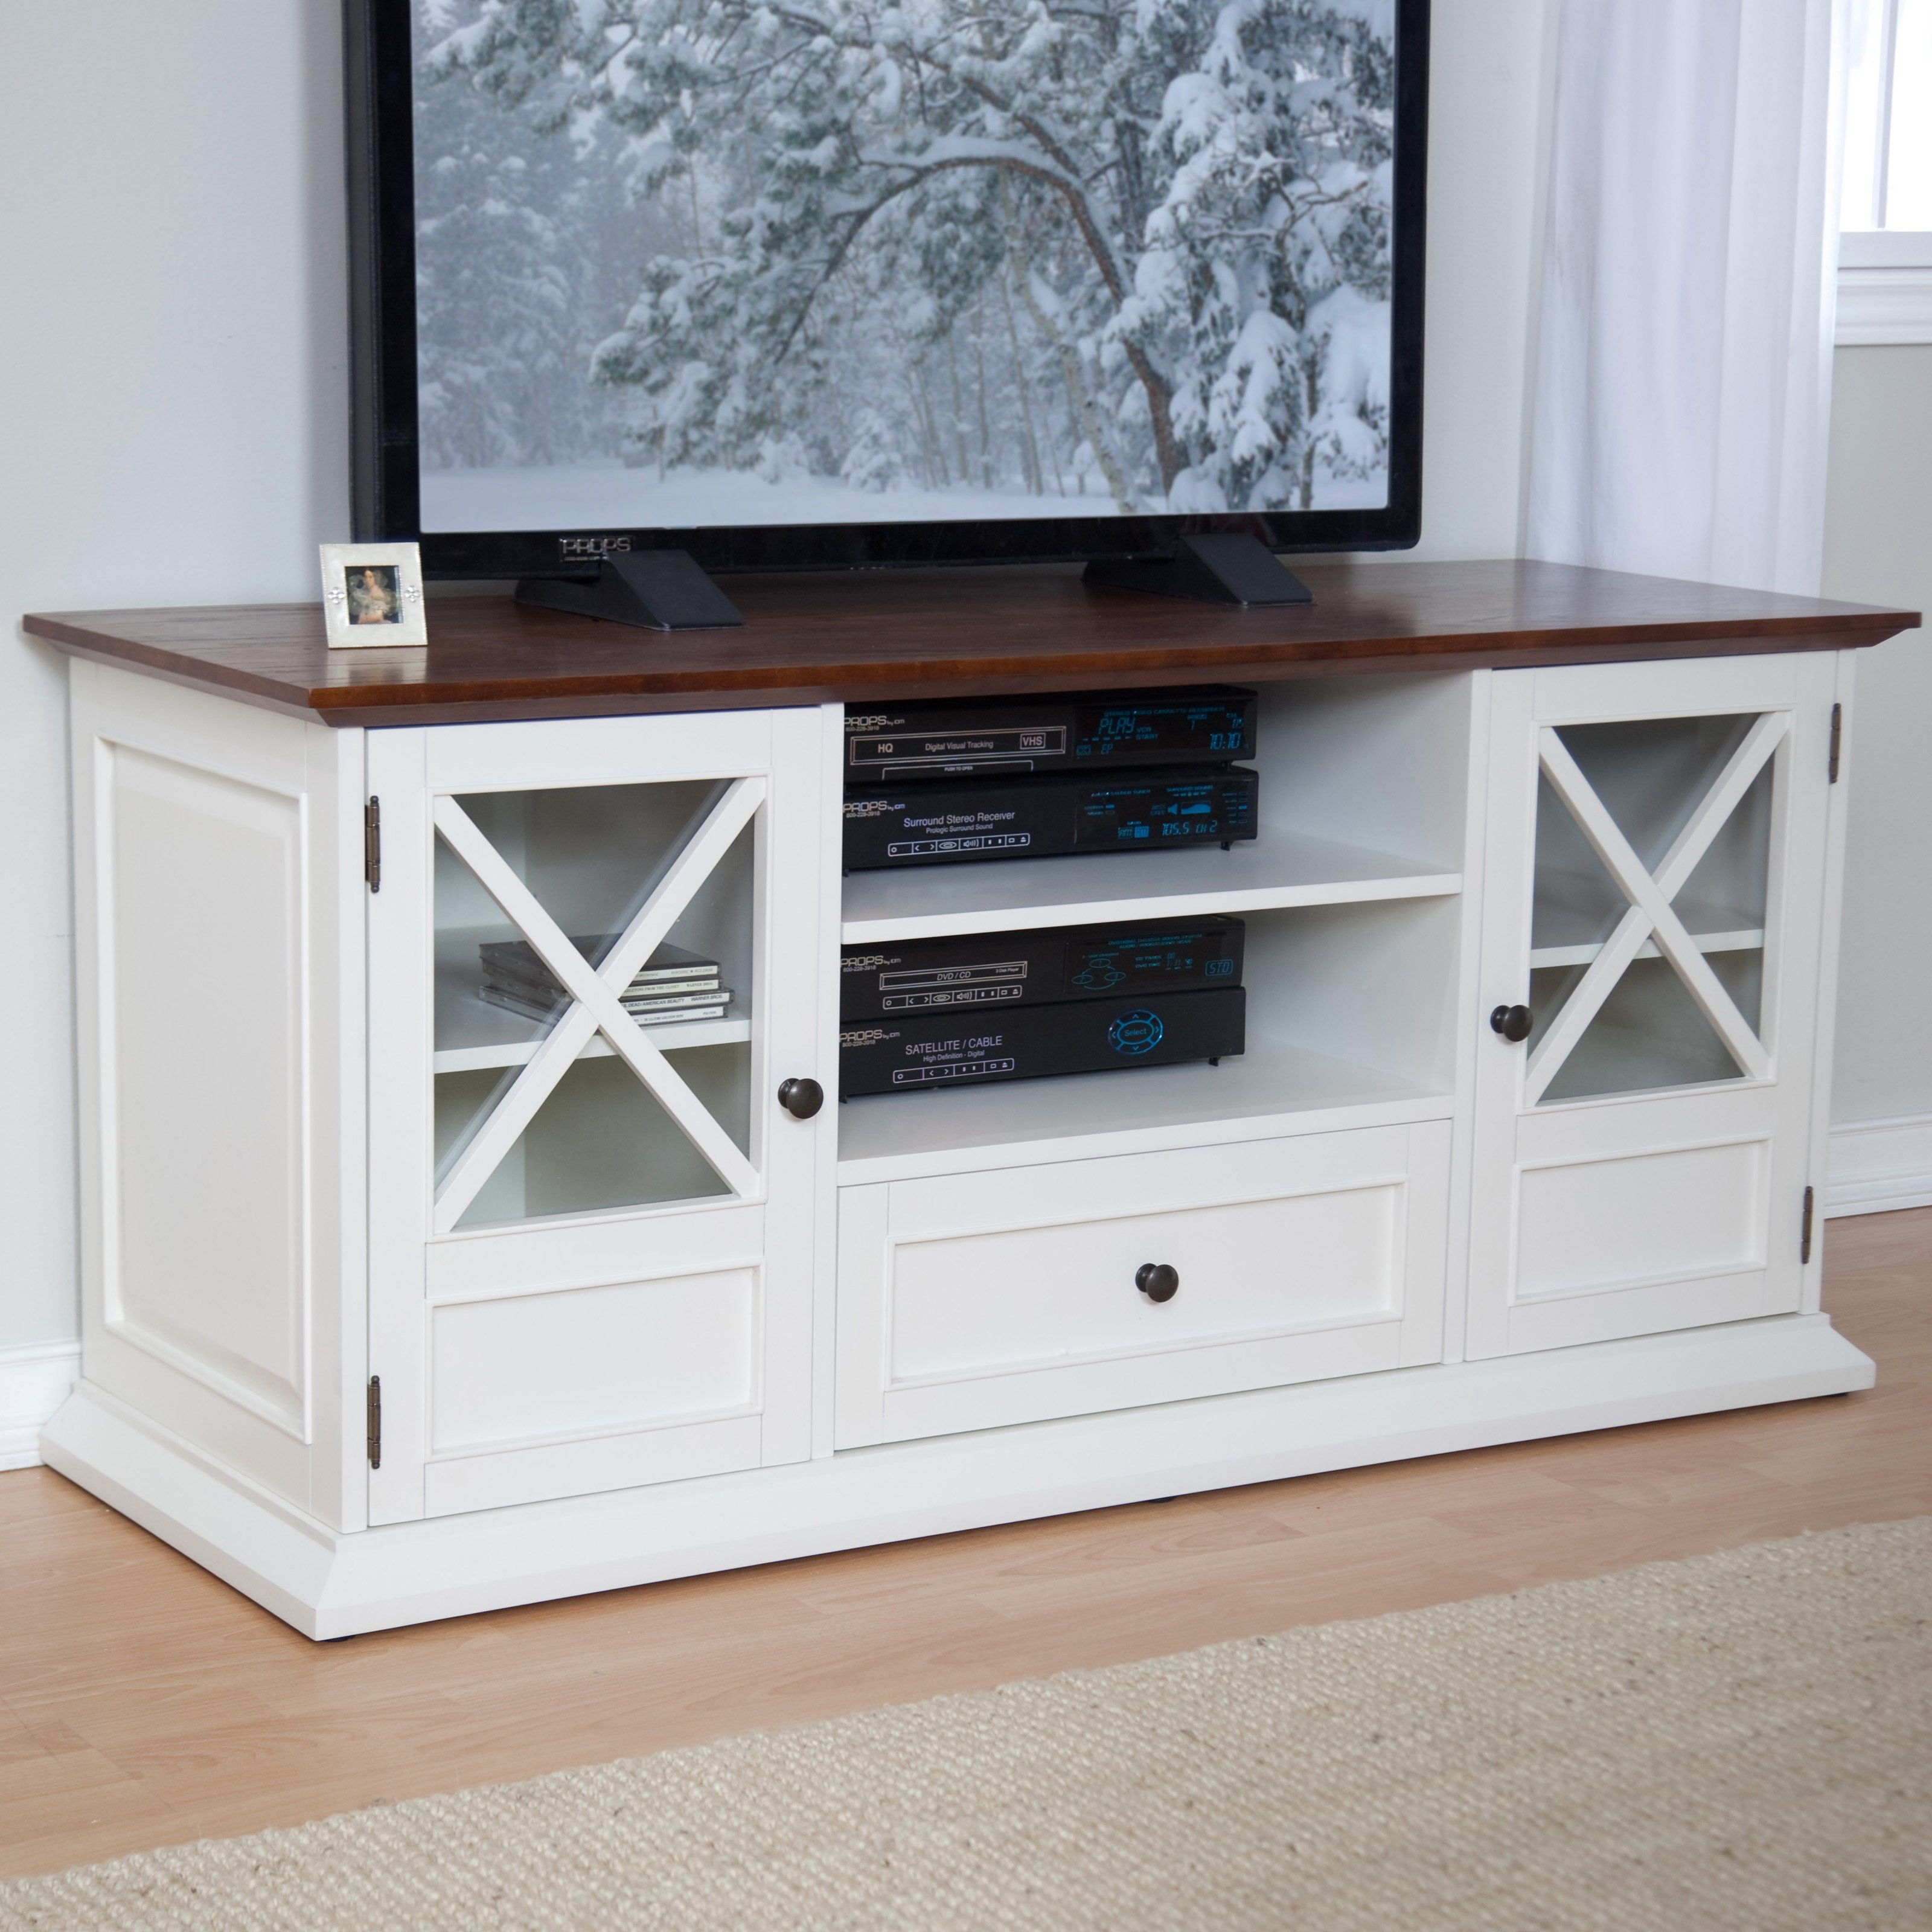 Smashing Image And Inch Tv Stand Inch Tv Stand Home Media Ideas To intended for Annabelle Blue 70 Inch Tv Stands (Image 14 of 30)